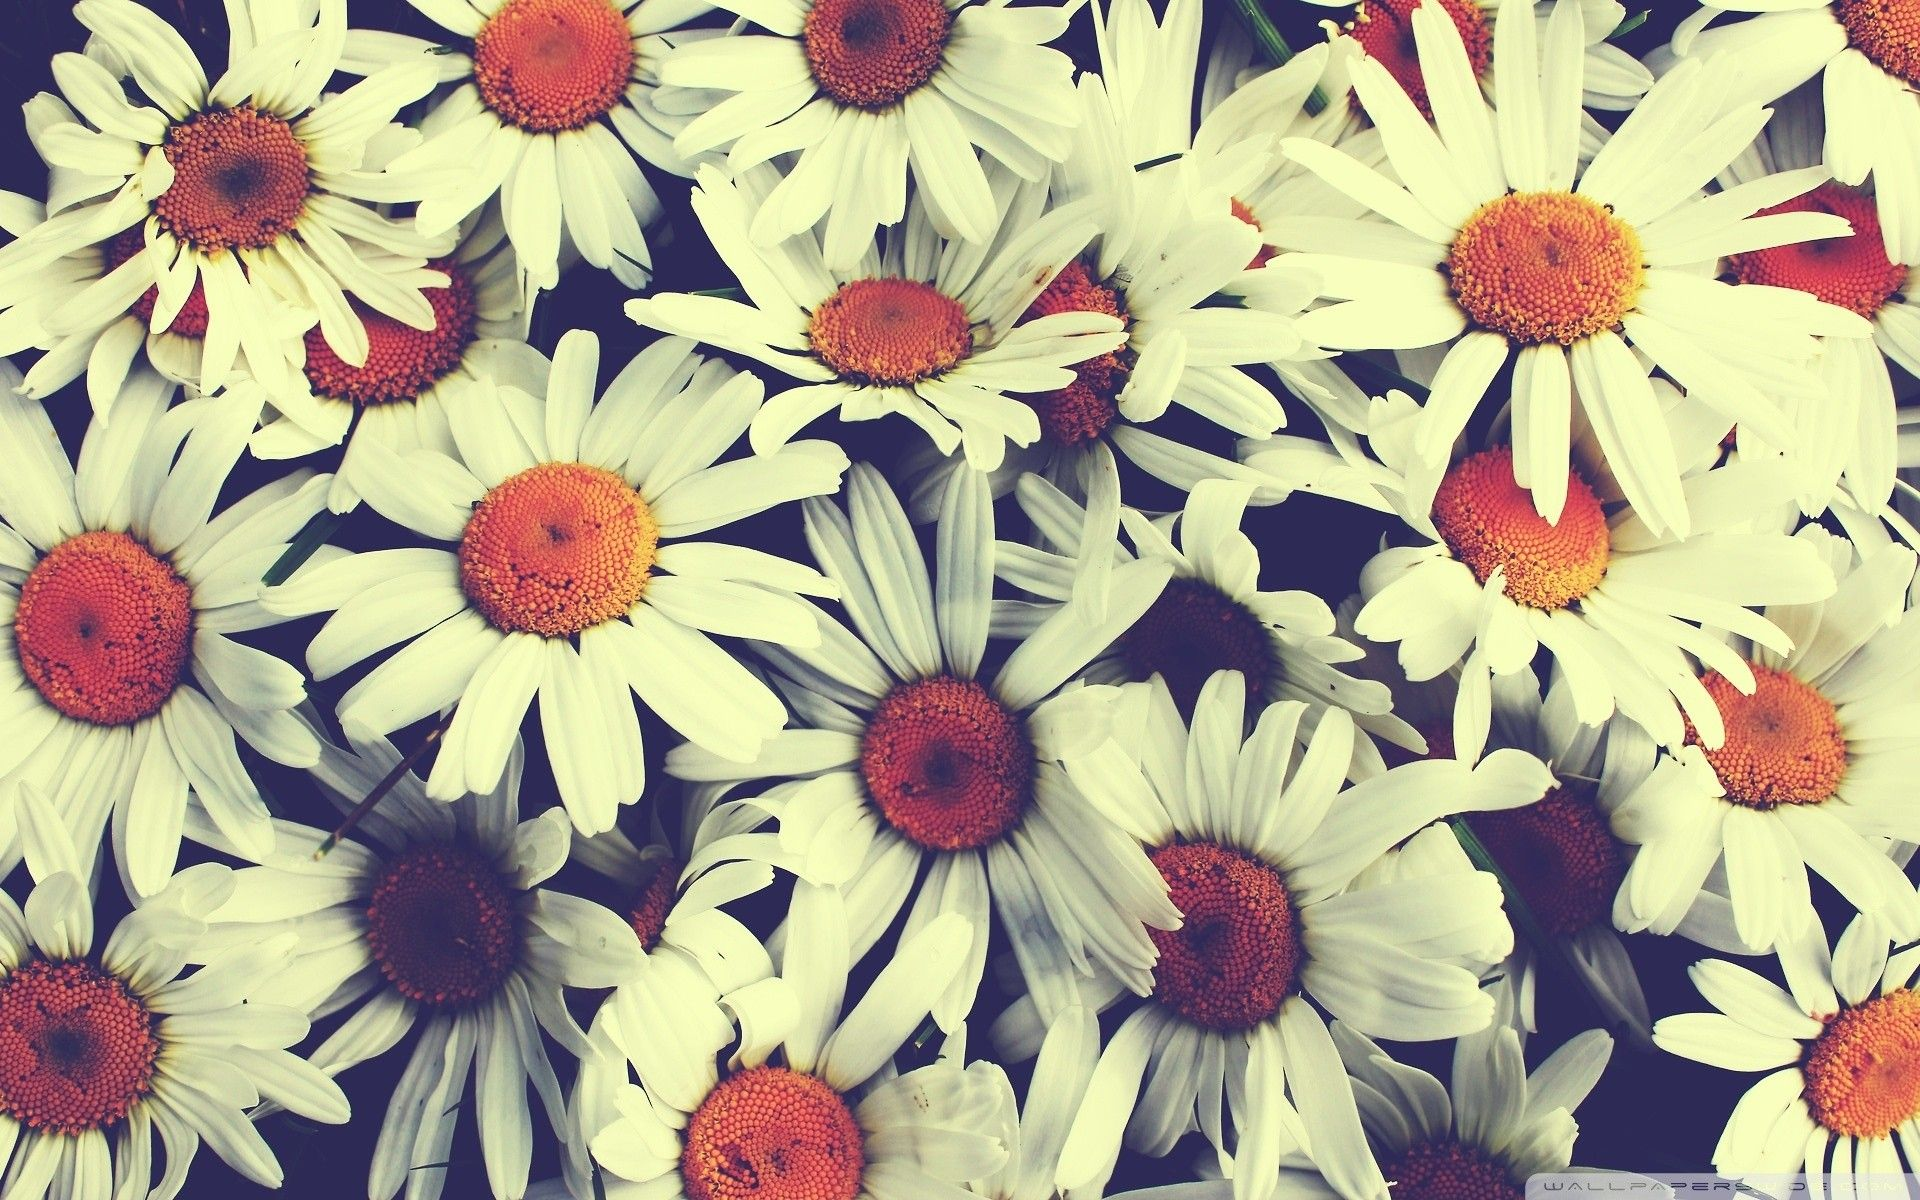 Vintage Flower Wallpapers High Quality Resolution Free Download Wallpapers Backg Vintage Flowers Wallpaper Flower Desktop Wallpaper Vintage Flower Backgrounds